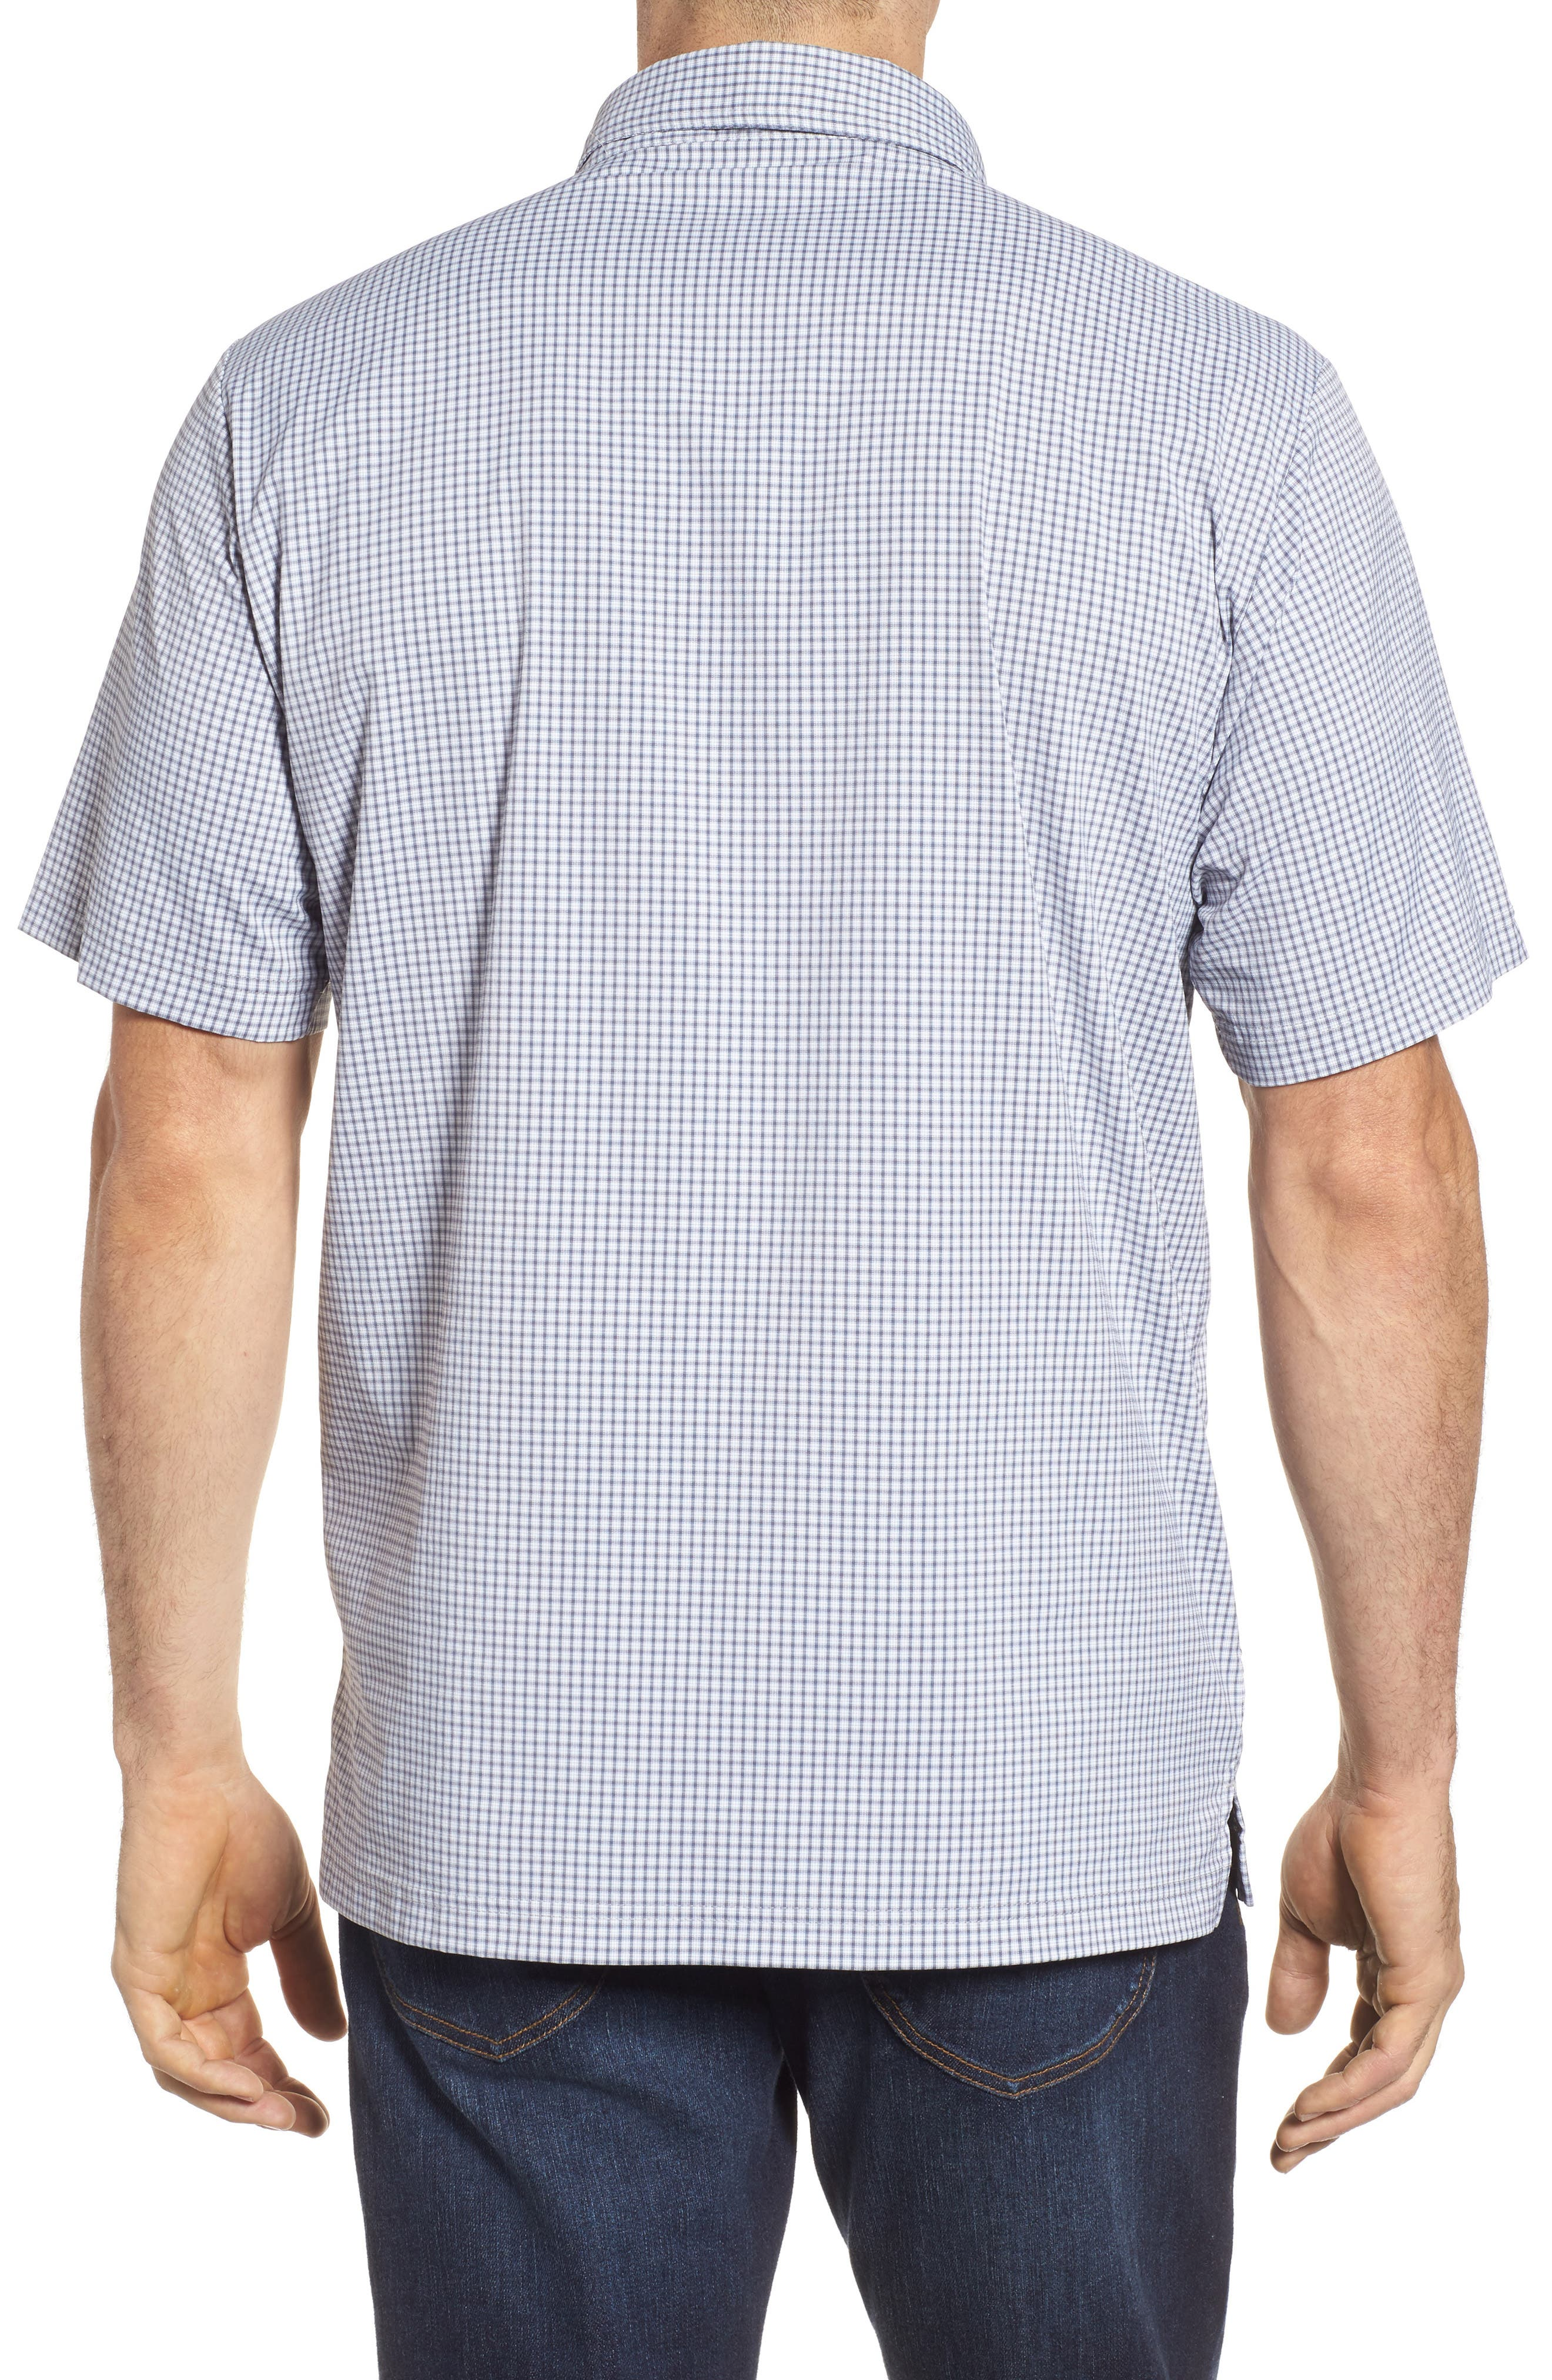 Zim Polo,                             Alternate thumbnail 2, color,                             White/ Grisaille